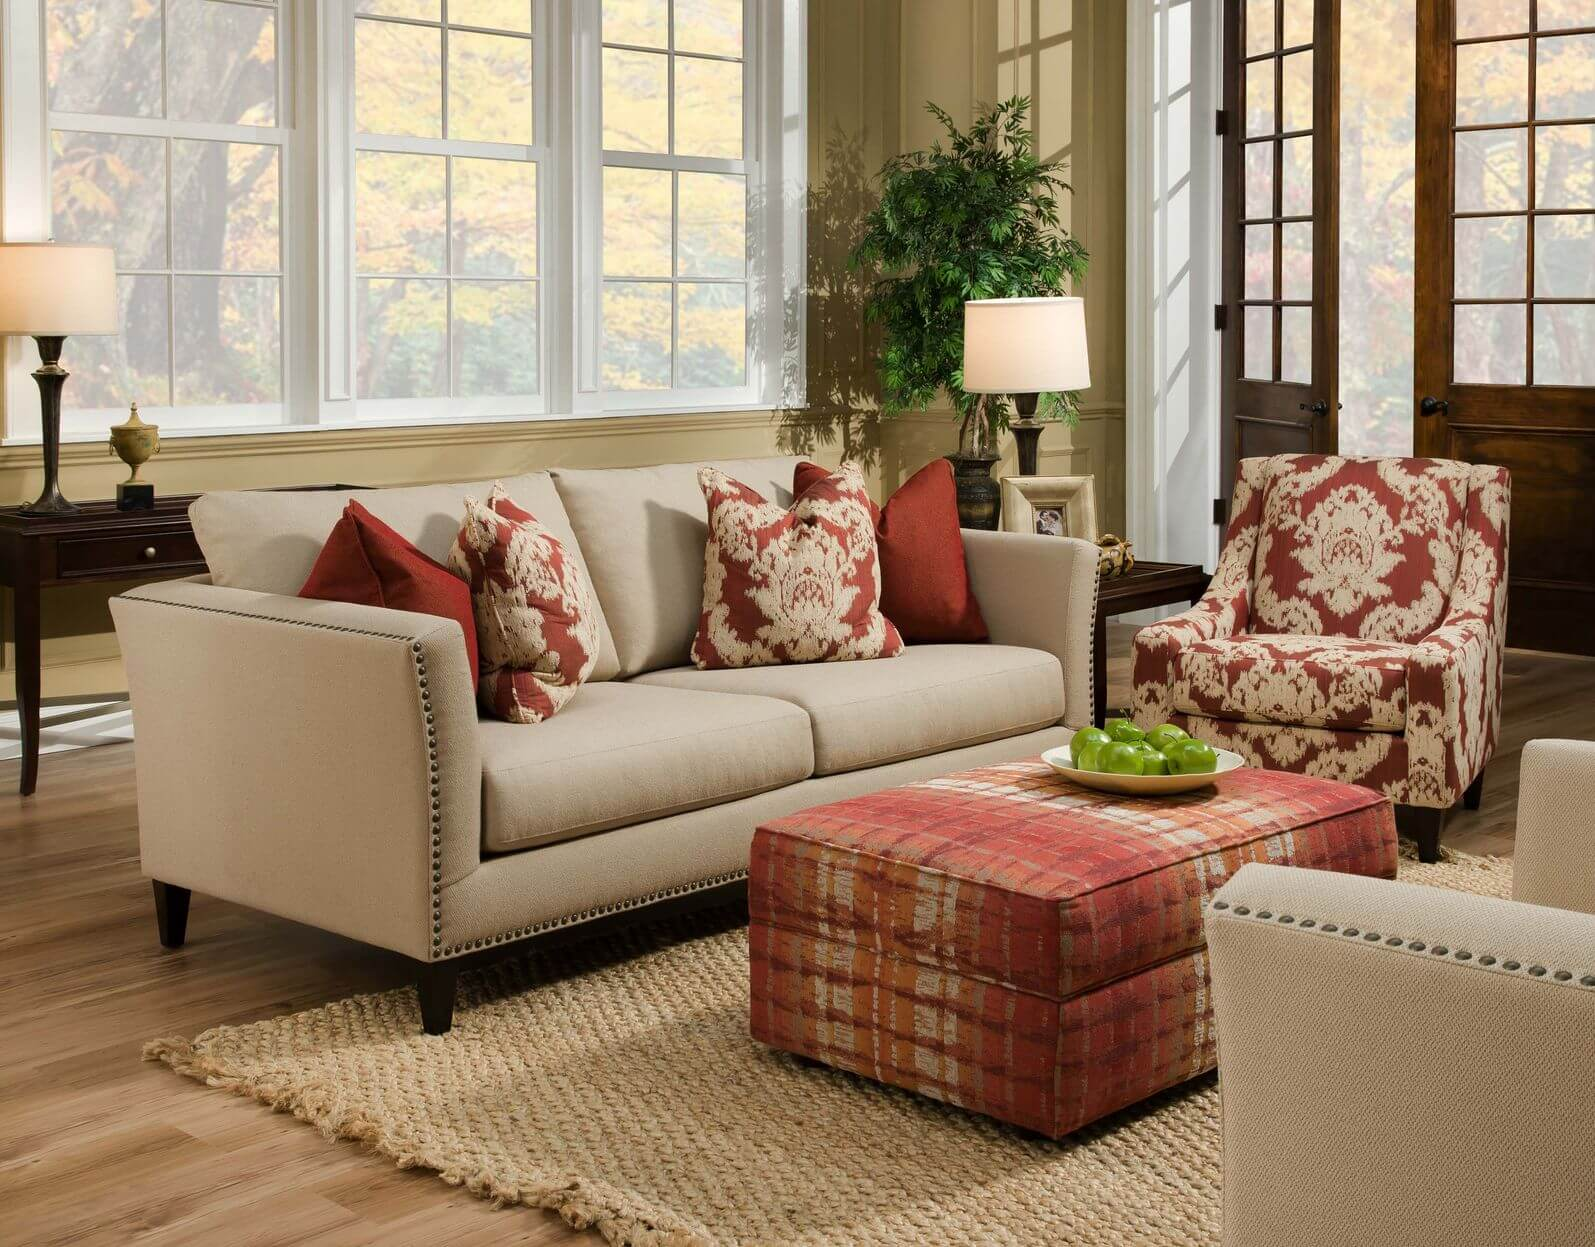 Beige Twin Couches Face Each Other Over Natural Hardwood Flooring And Tan  Rug In This Living Part 78